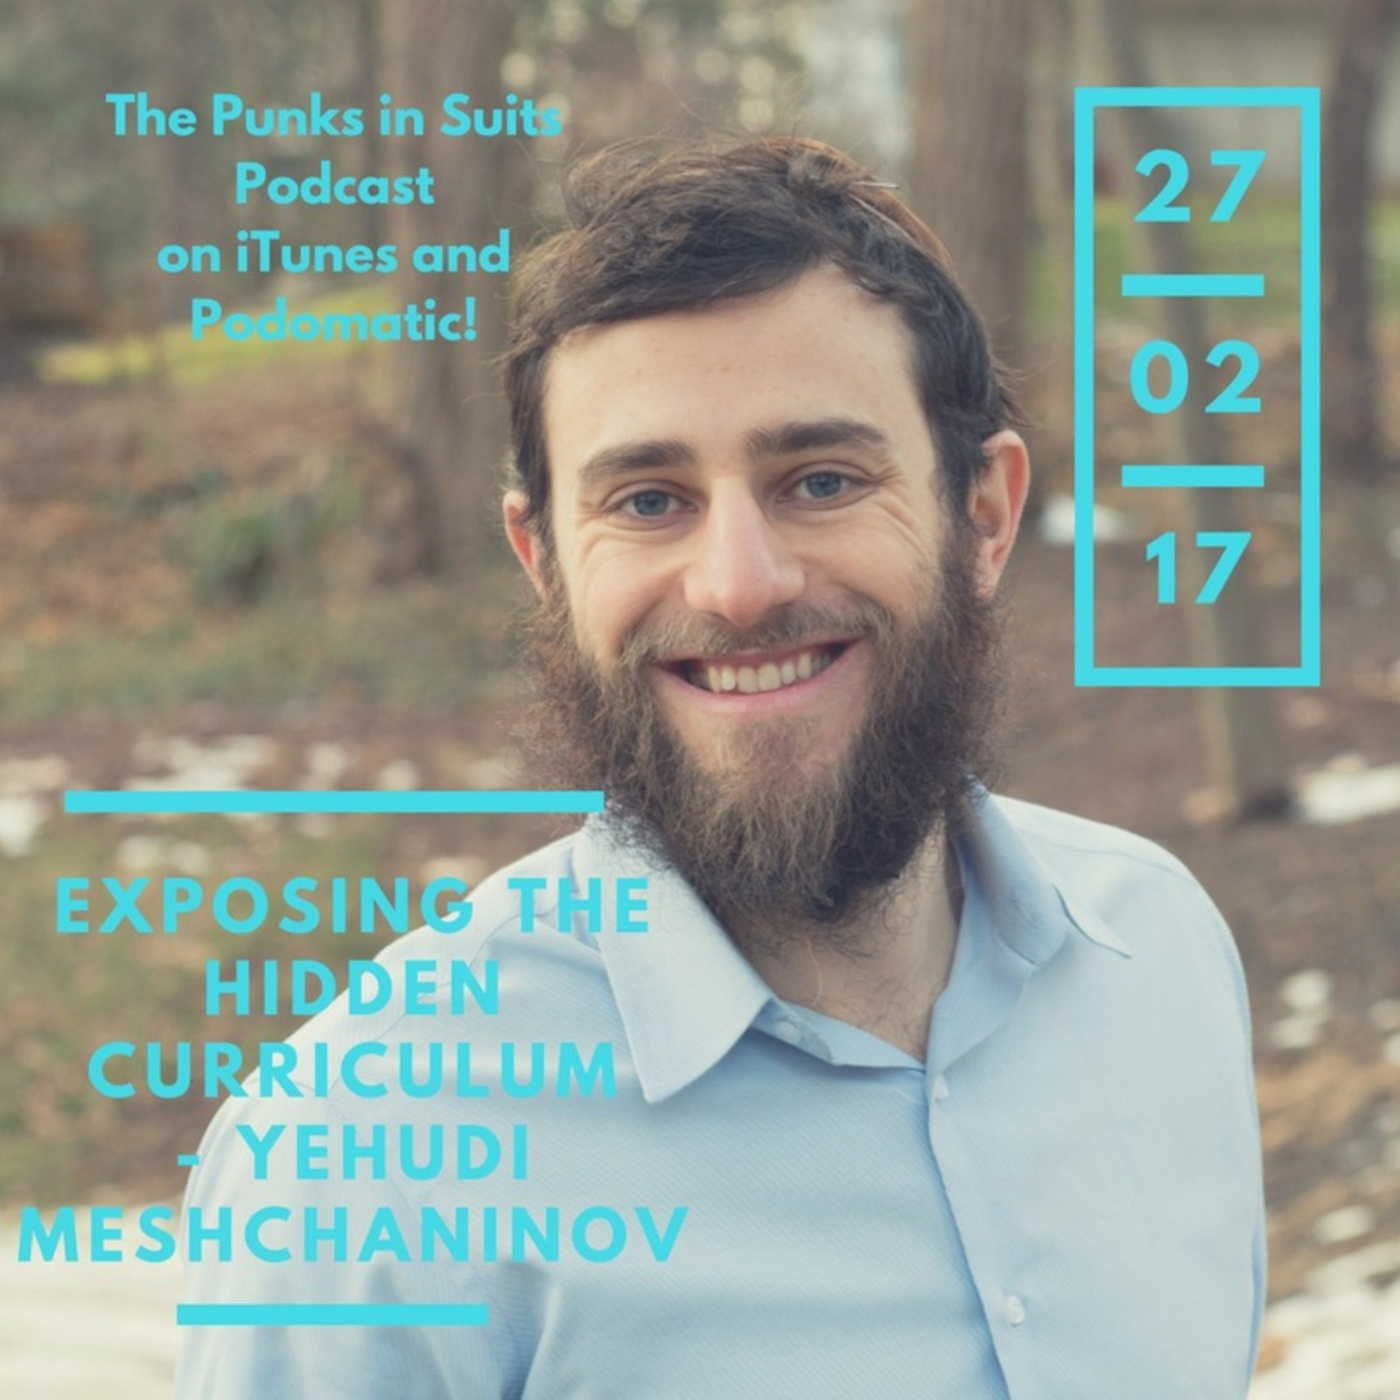 Episode 18: Exposing the Hidden Curriculum - Yehudi Meshchaninov